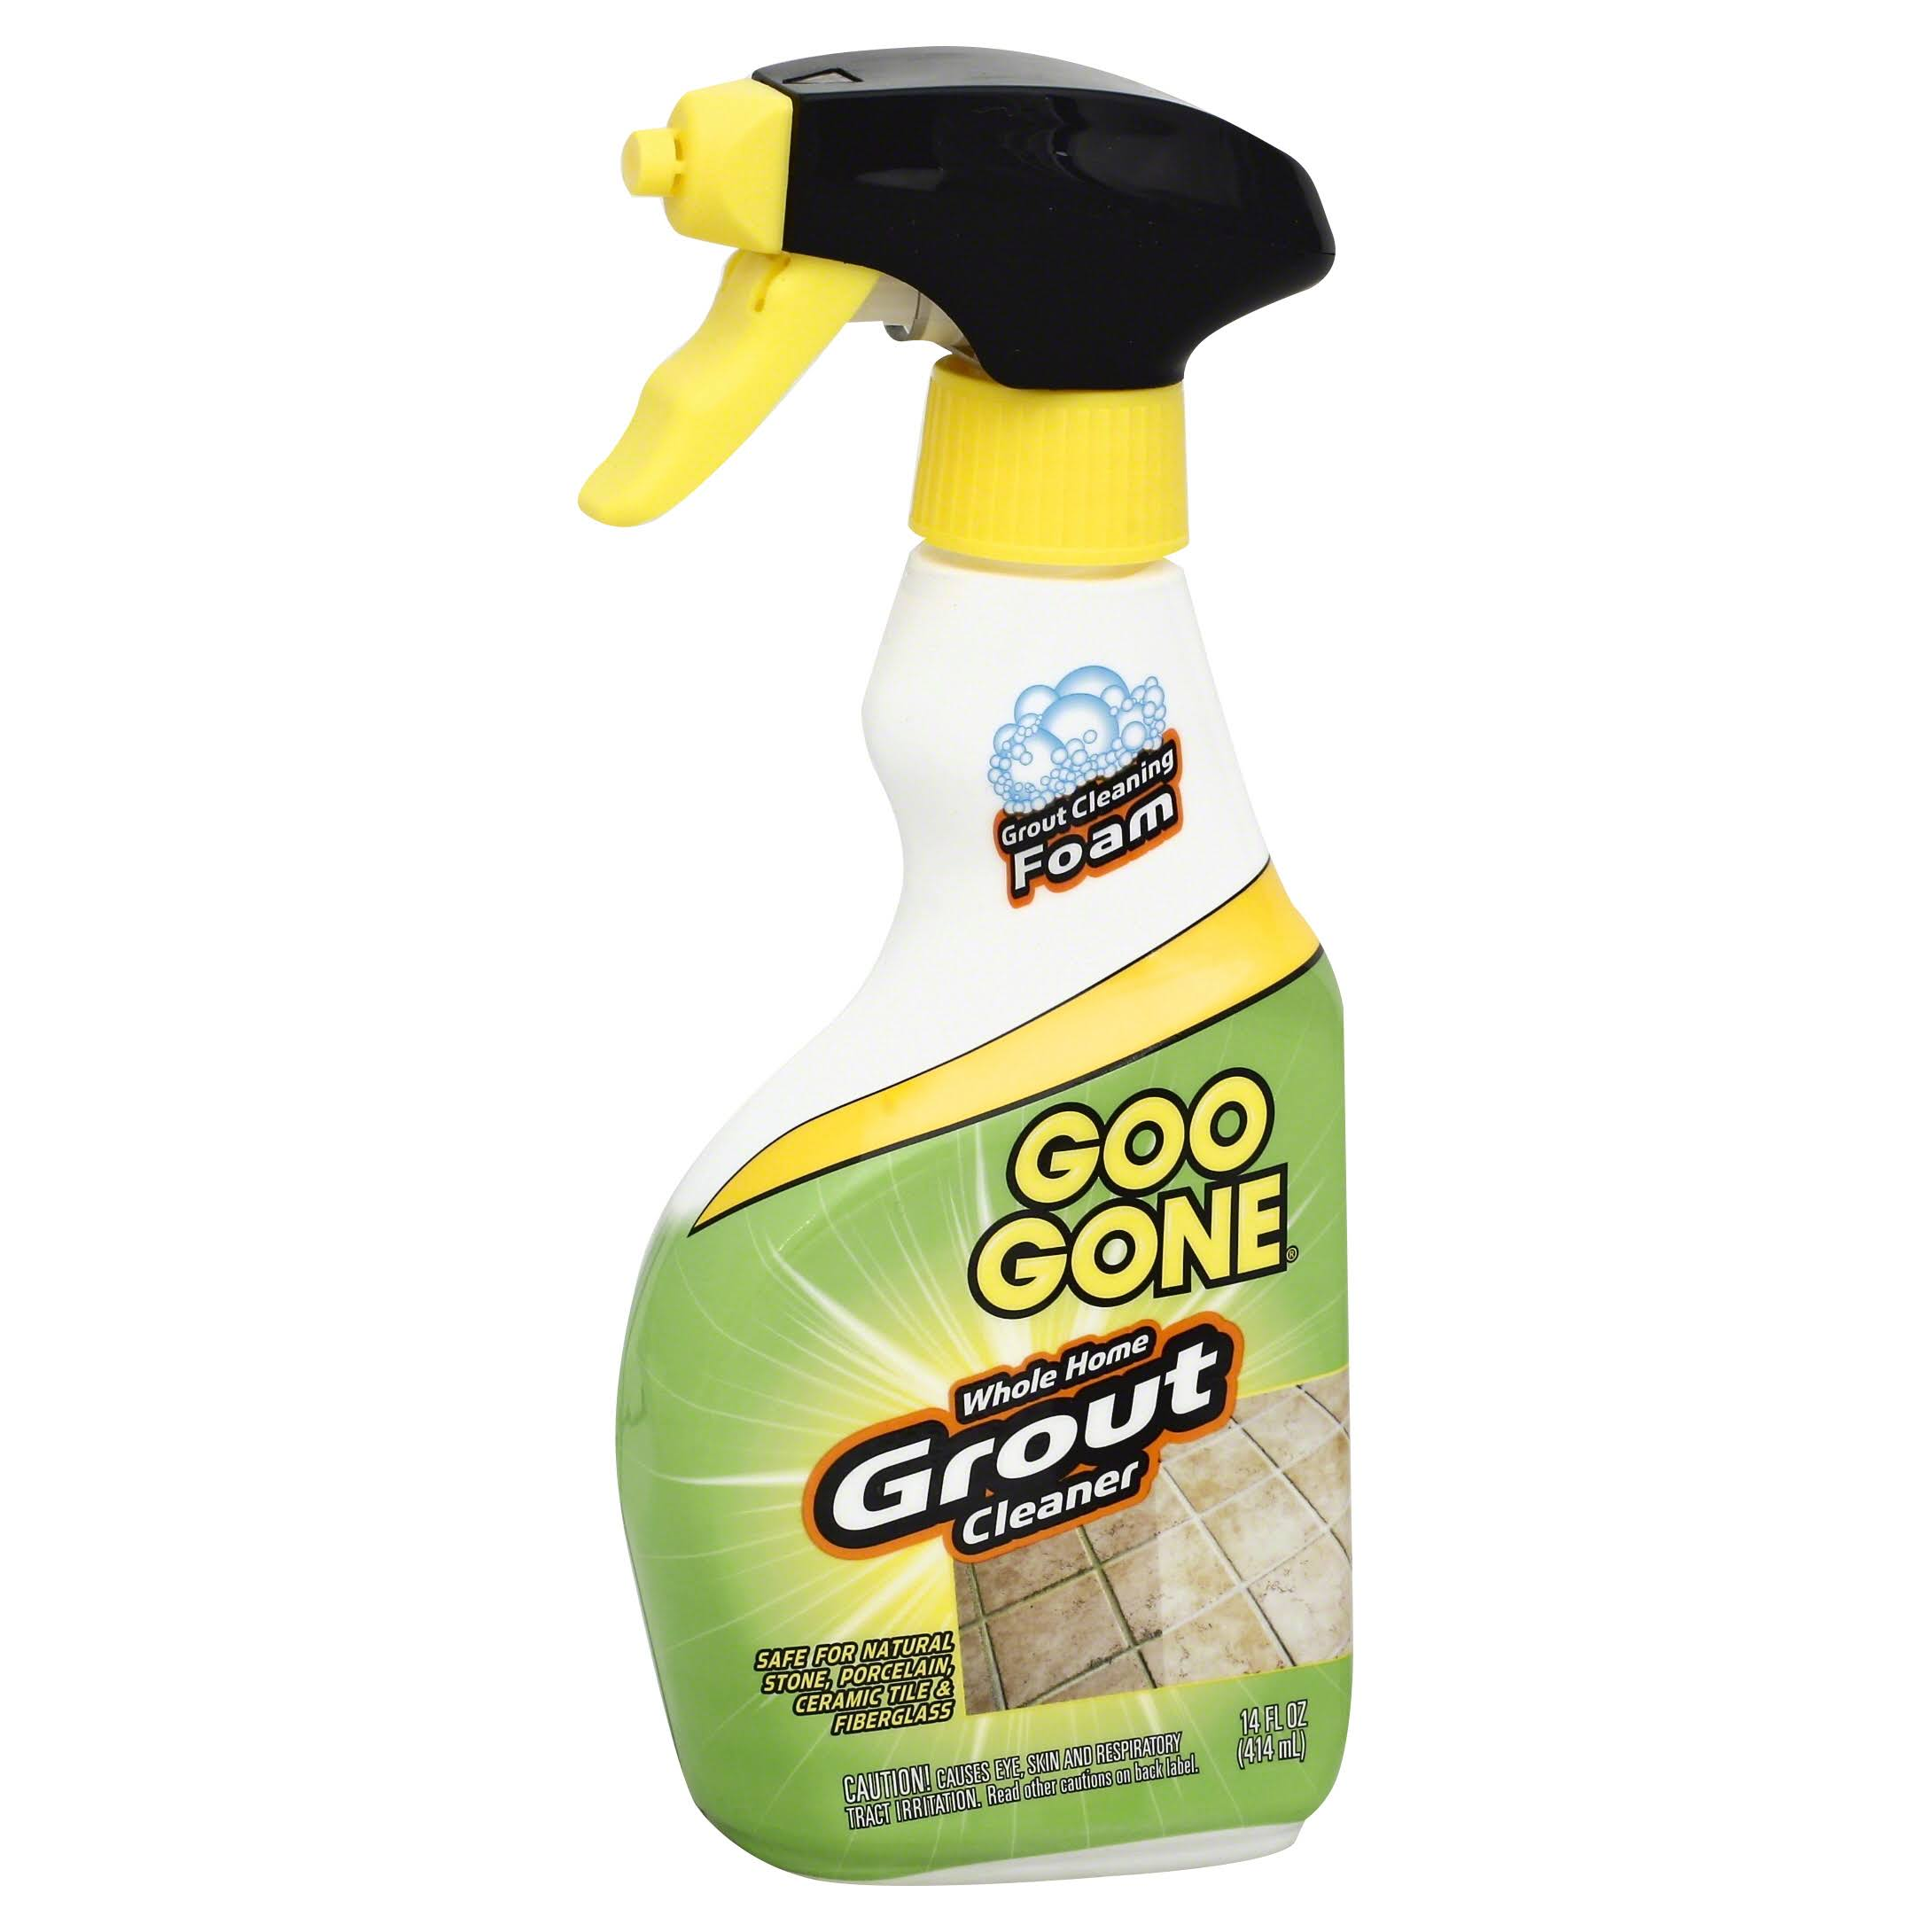 Goo Gone Grout and Tile Cleaner - 414ml